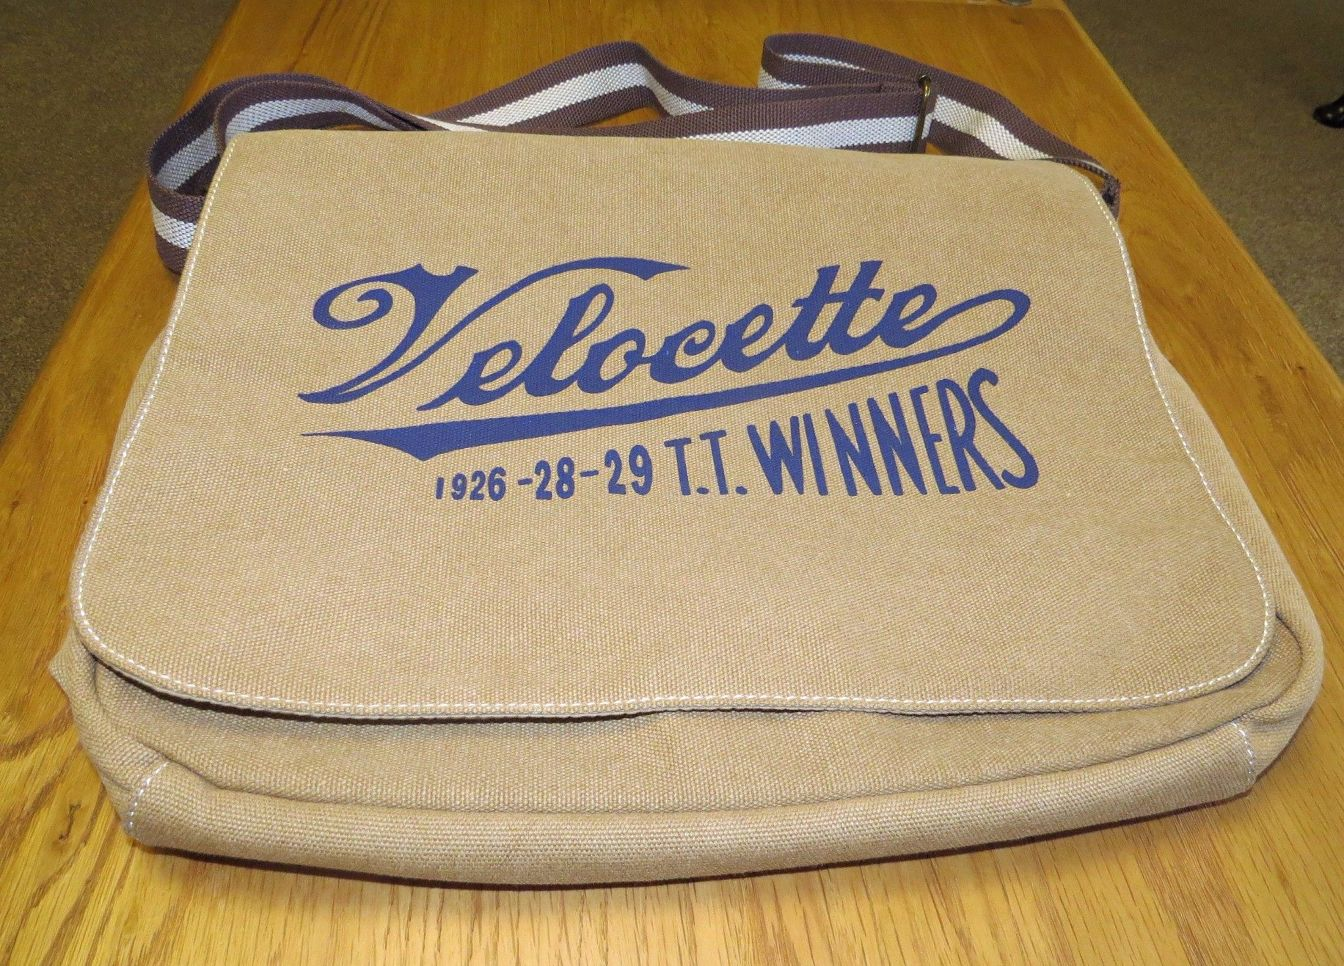 A Velocette TT Winners Shoulder Bag